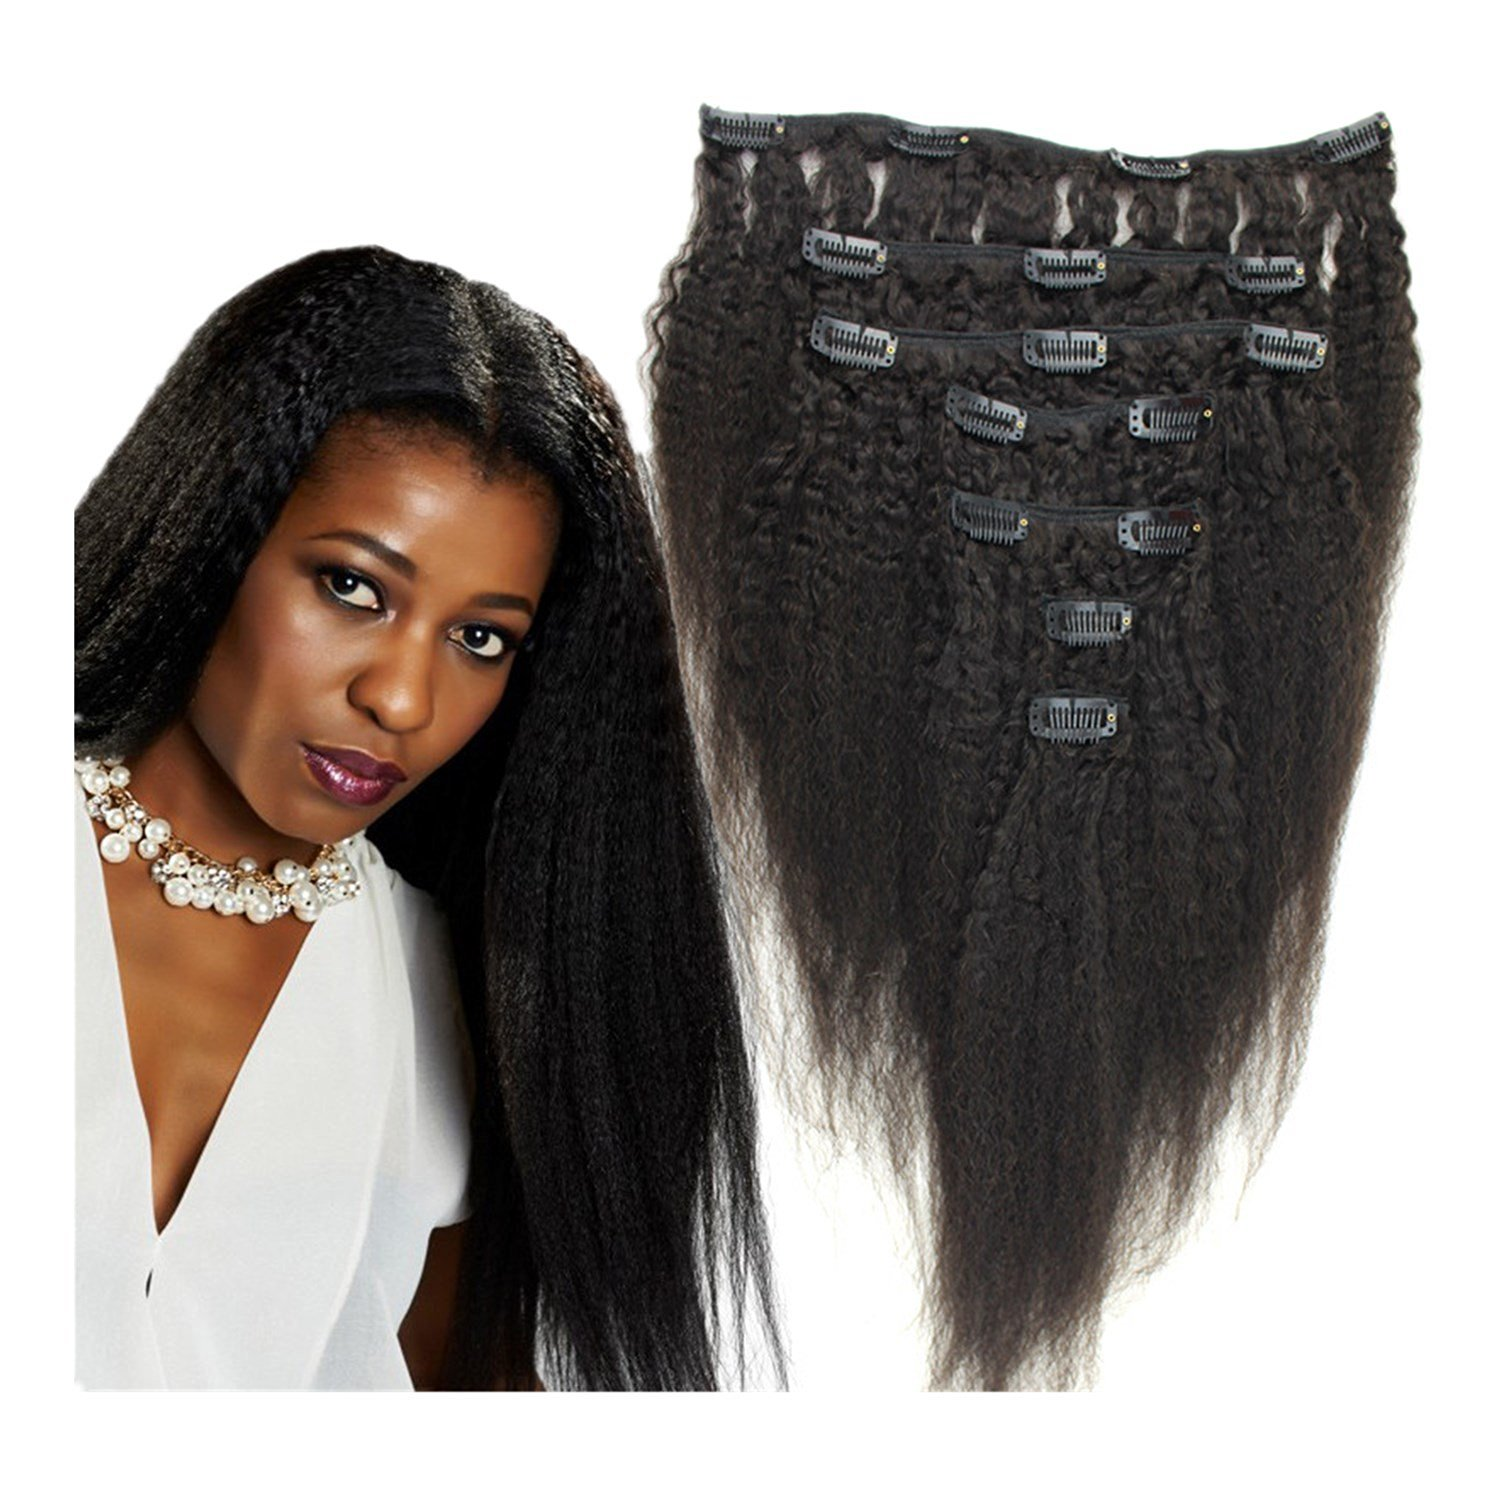 Cheap Hair Extensions Yaki Find Hair Extensions Yaki Deals On Line